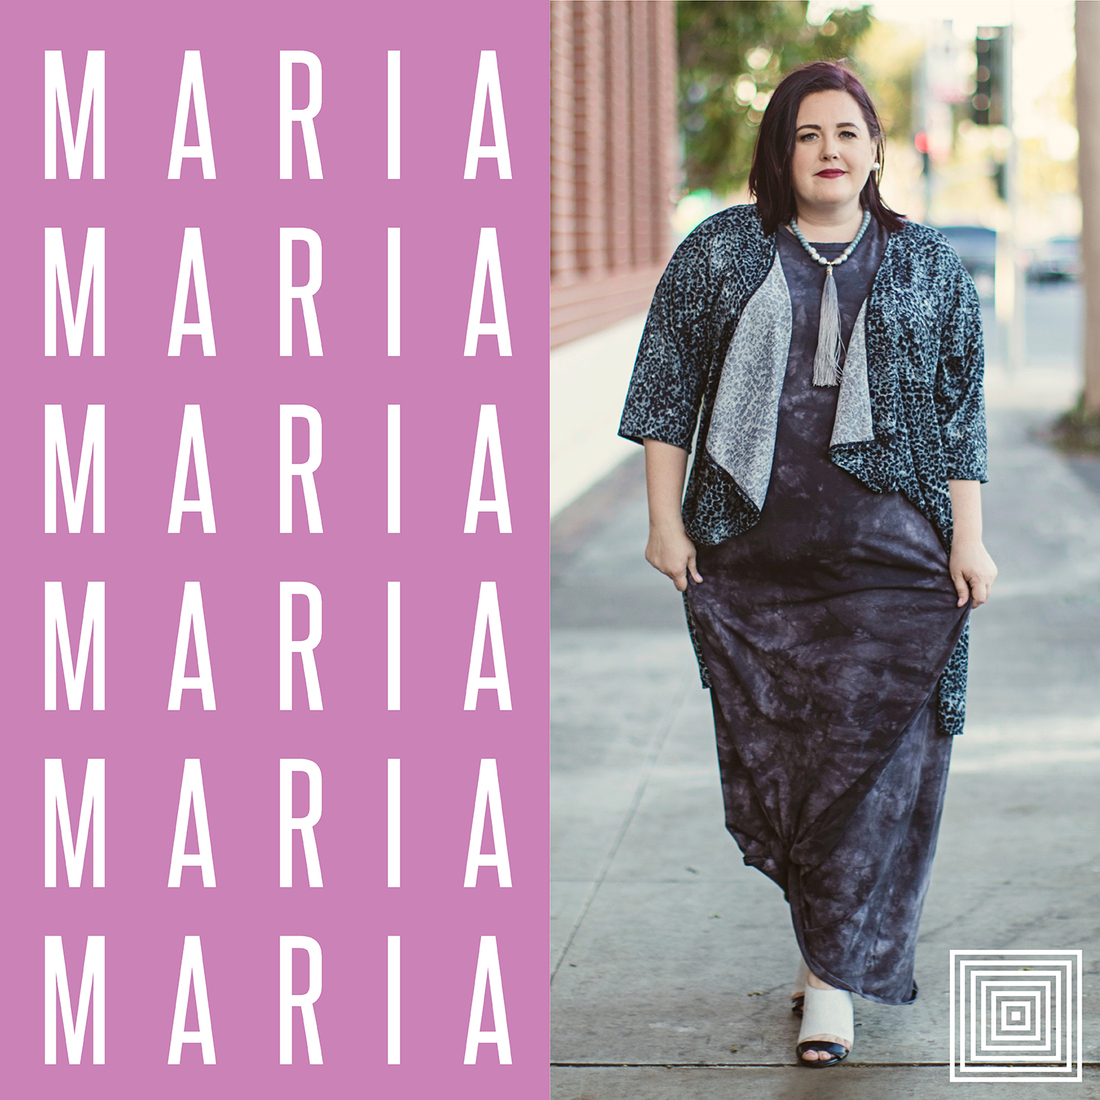 bce221b1921 We are so excited to introduce the LuLaRoe Maria Dress! One of the  questions we often get is about the LuLaRoe Maria Sizing Chart and how the  dress fits!